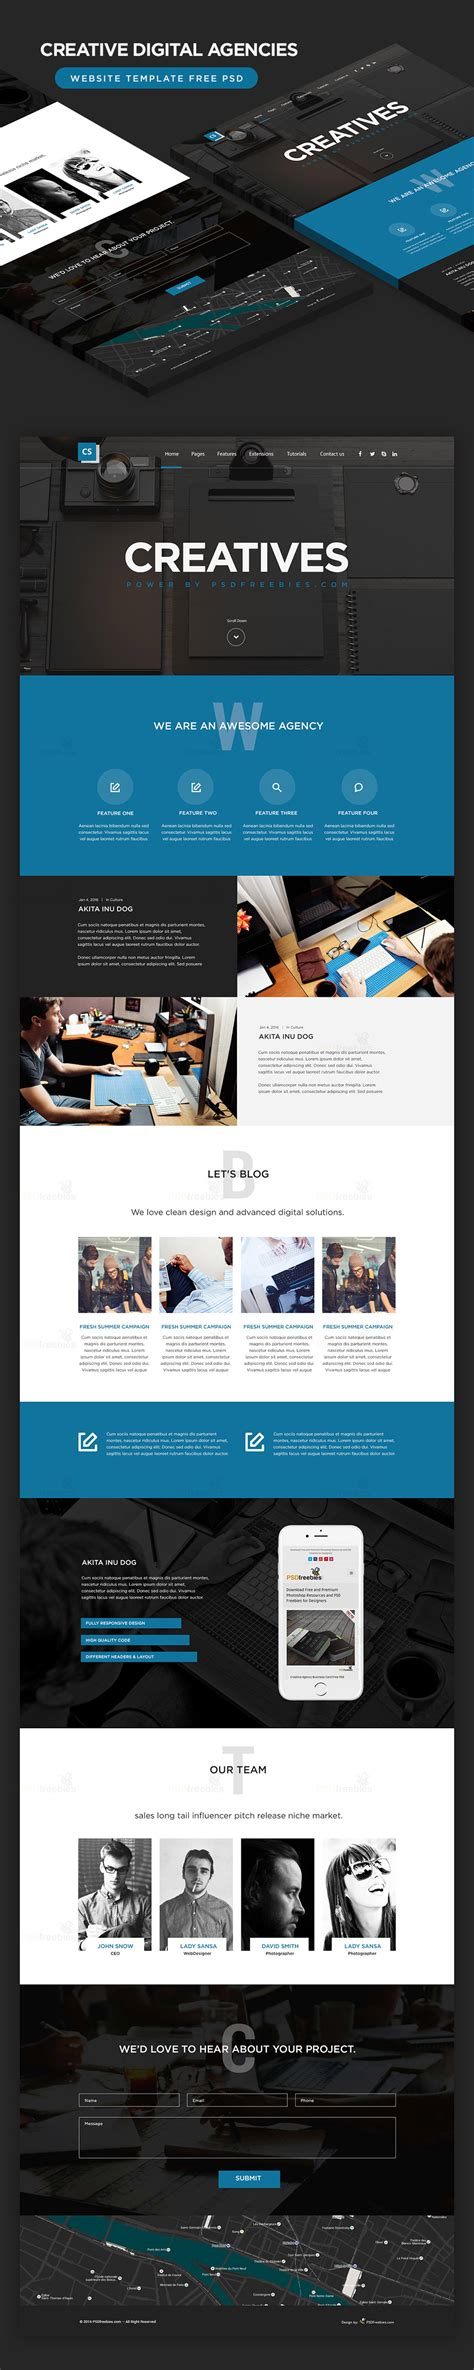 High Quality 50 Free Corporate And Business Web Templates Psd Download Download Psd Collection Agency Website Template